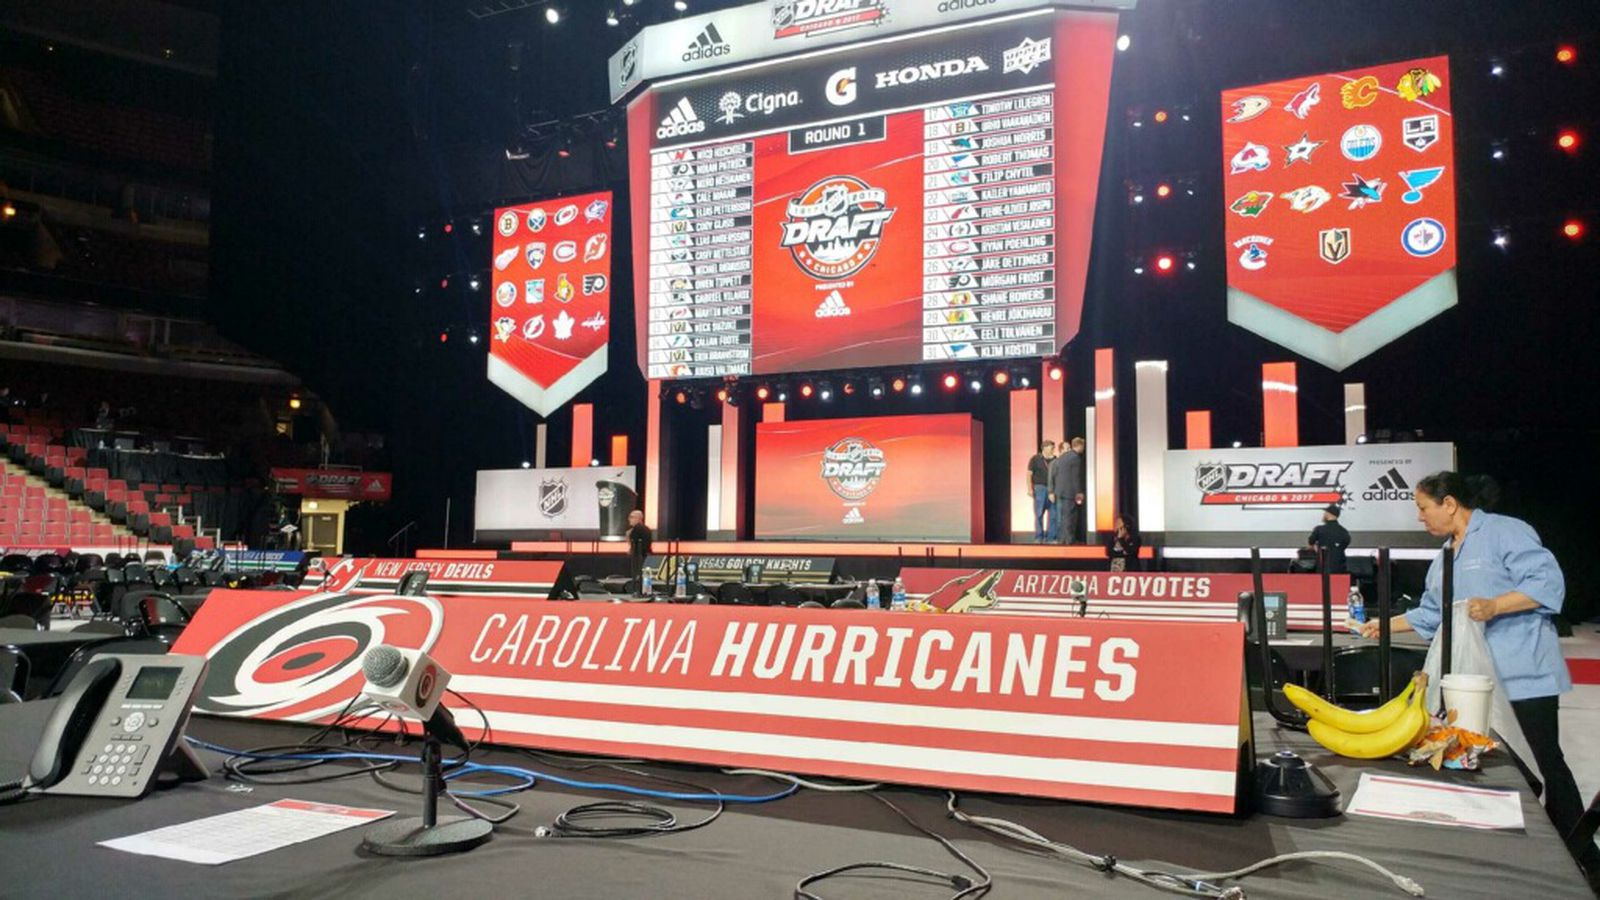 Carolina Hurricanes Selections, Live Updates, Picks, News and Notes from Day 2 of the 2017 NHL Draft